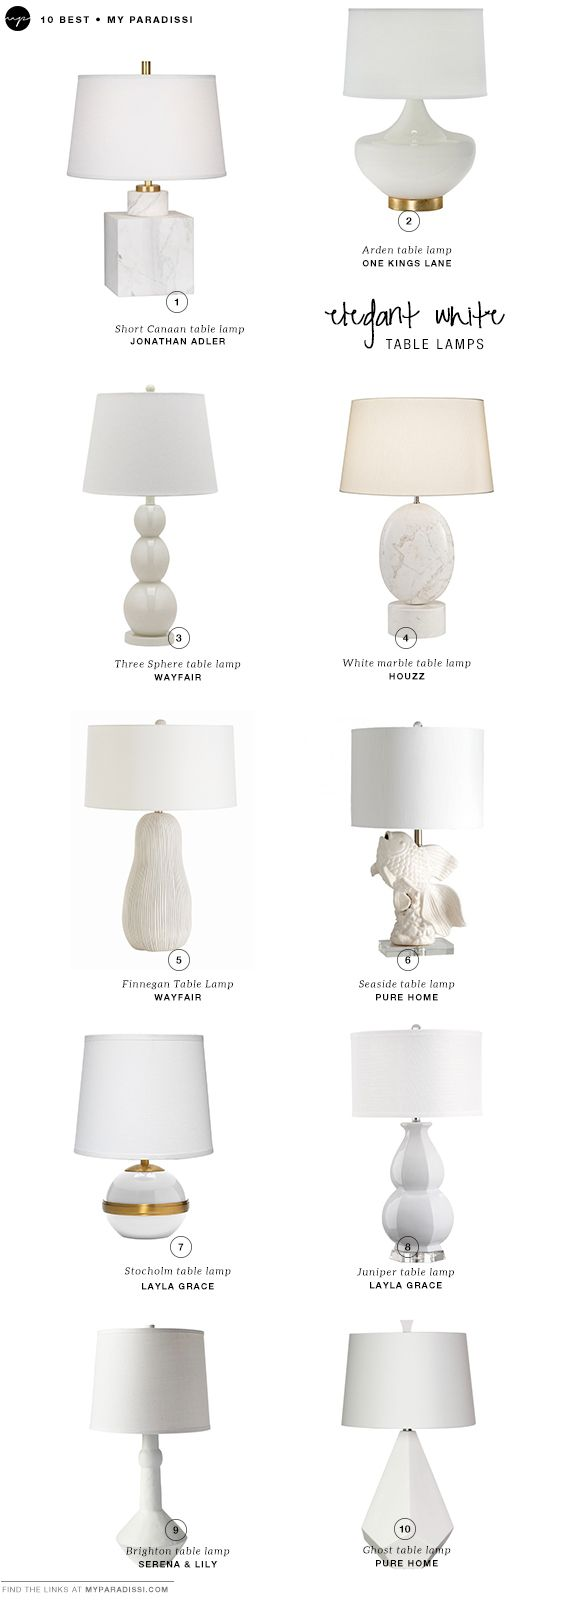 White table lamps bedroom - 10 Best Elegant White Table Lamps